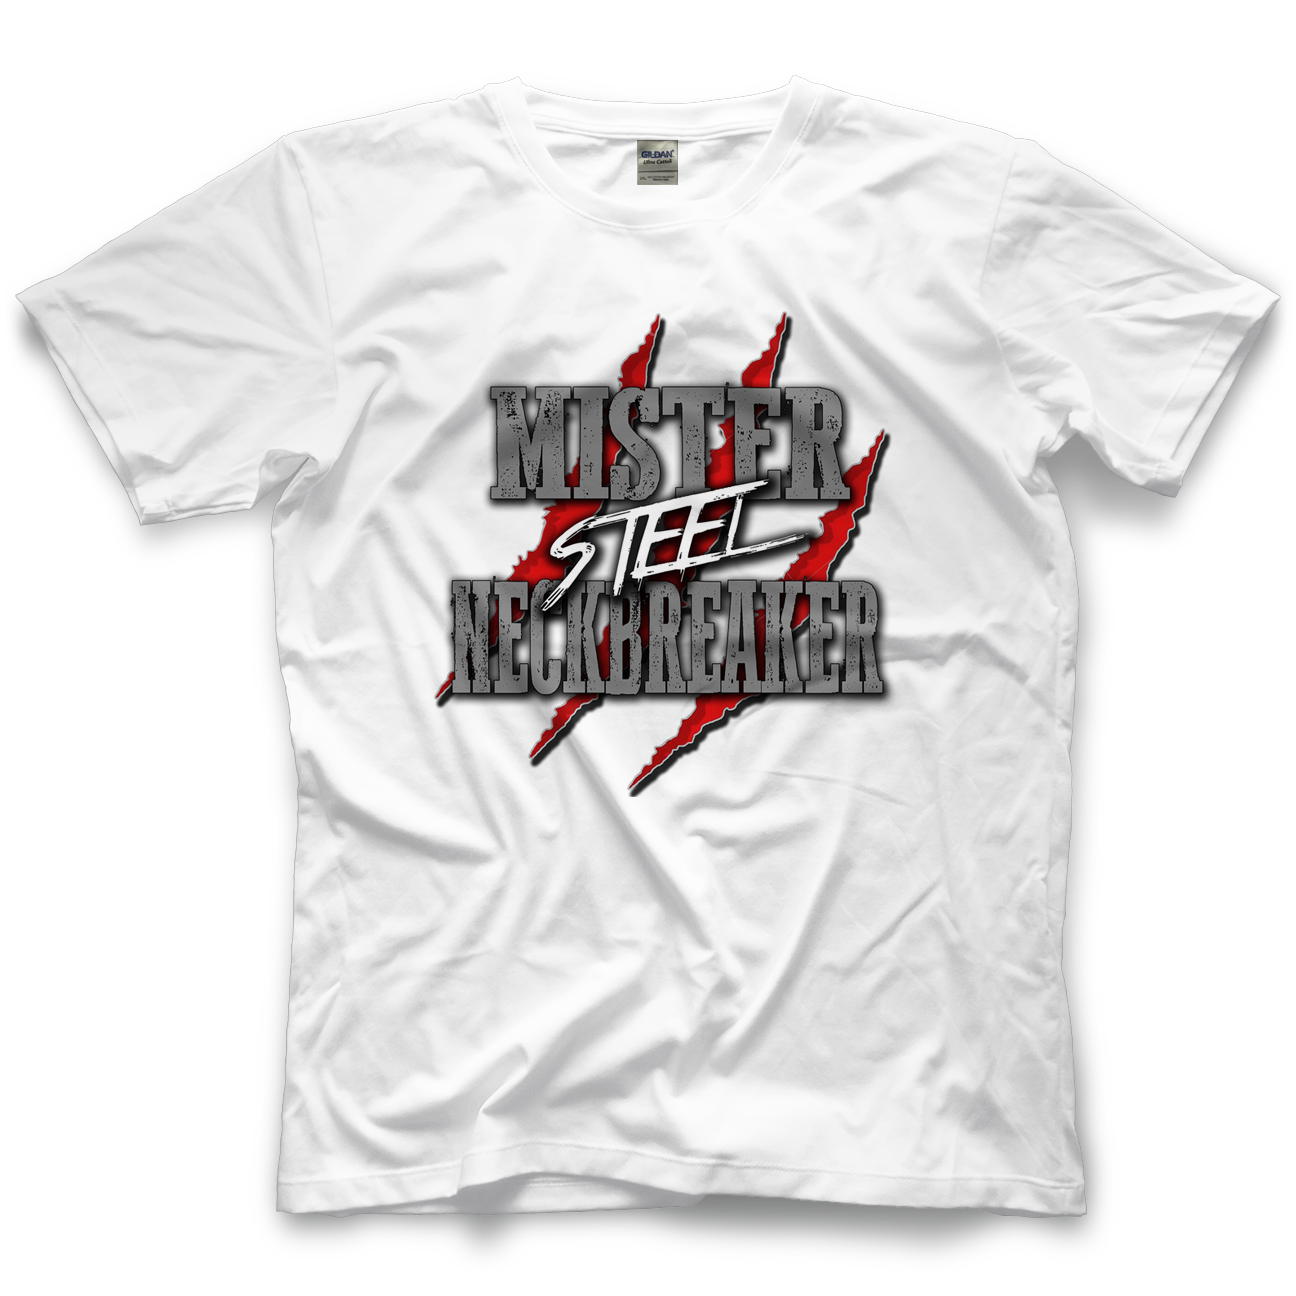 Mr. Neckbreaker T-shirt